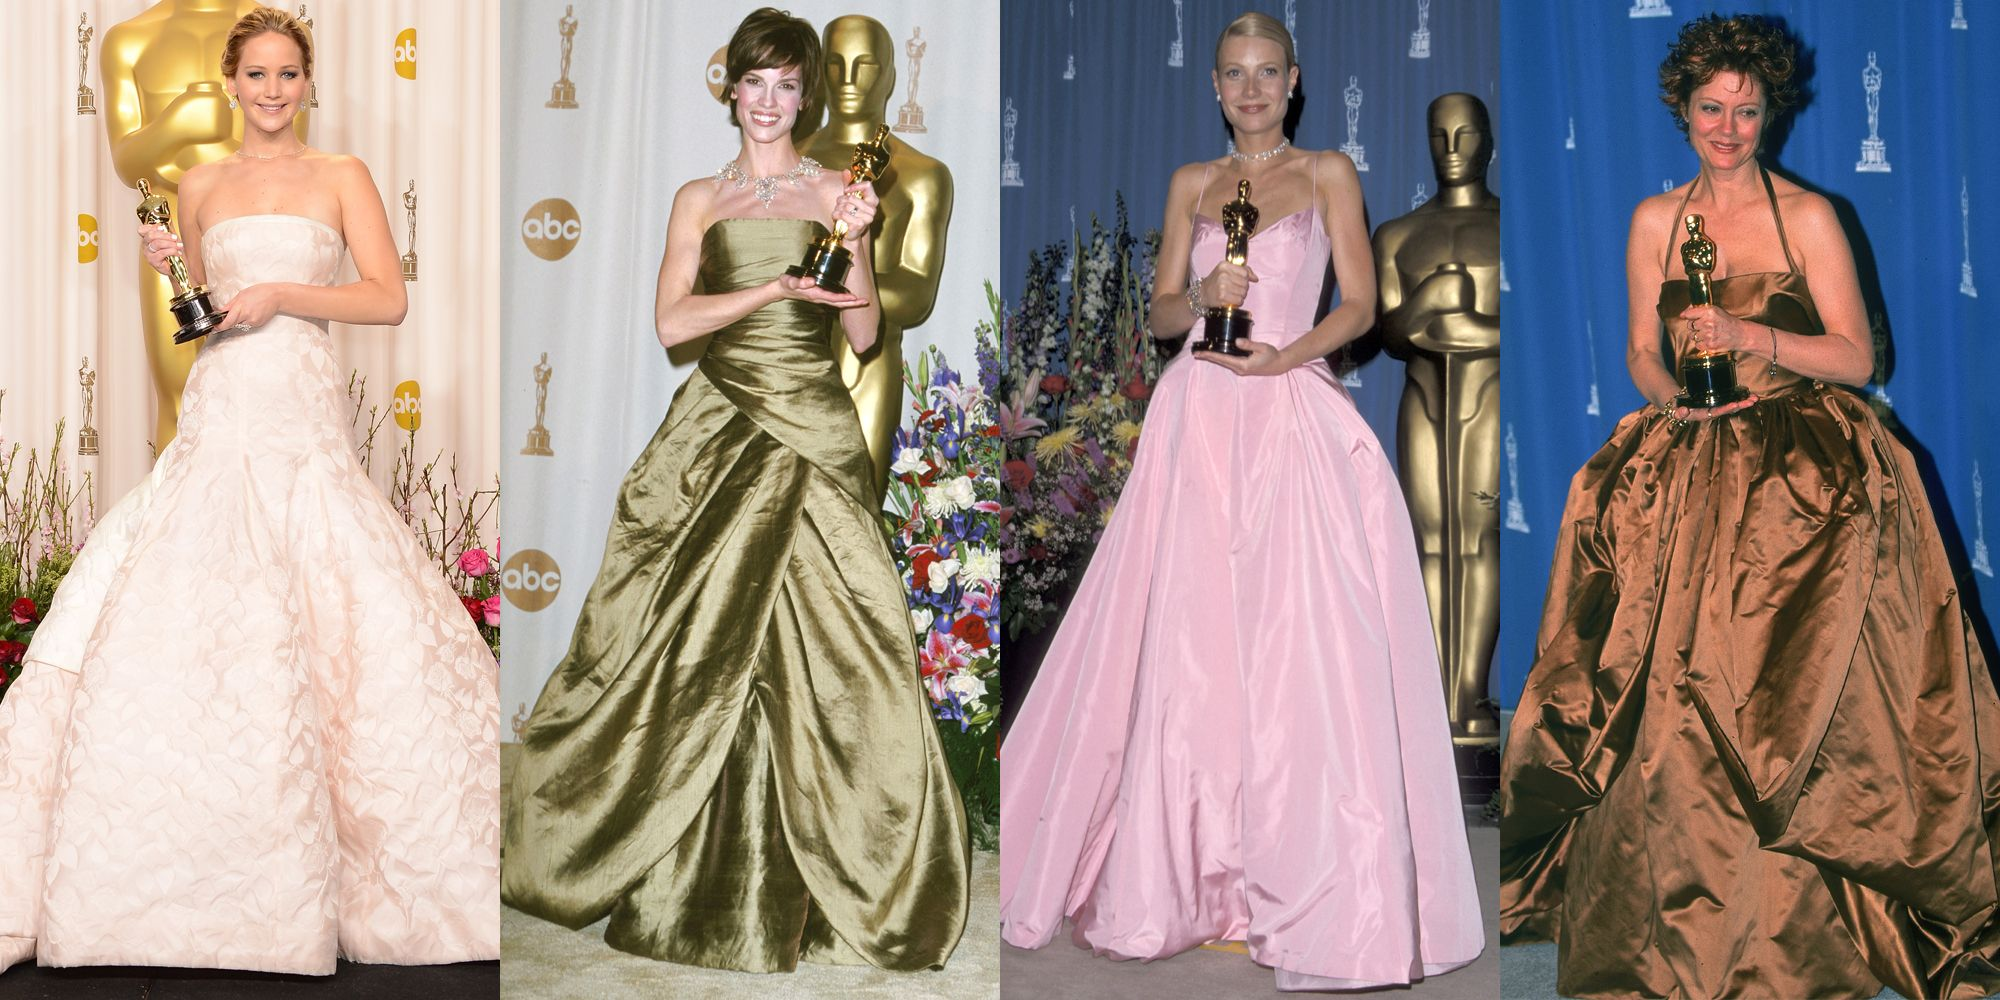 <p><em>Jennifer Lawrence in Dior (2013), Hilary Swank in Randolph Duke (2000), Gwyneth Paltrow in Ralph Lauren (1999), Susan Sarandon in Dolce & Gabbana (1996)</em></p><p>The abundance of taffeta here might make this trend feel dated, but Jennifer Lawrence's 2013 winning ensemble proves the princess ball gown never dies. The Oscars are the red carpet you can go <em>all out</em> on, so if you've got the chance to be crowned top actress, why not indulge your inner royal? </p>